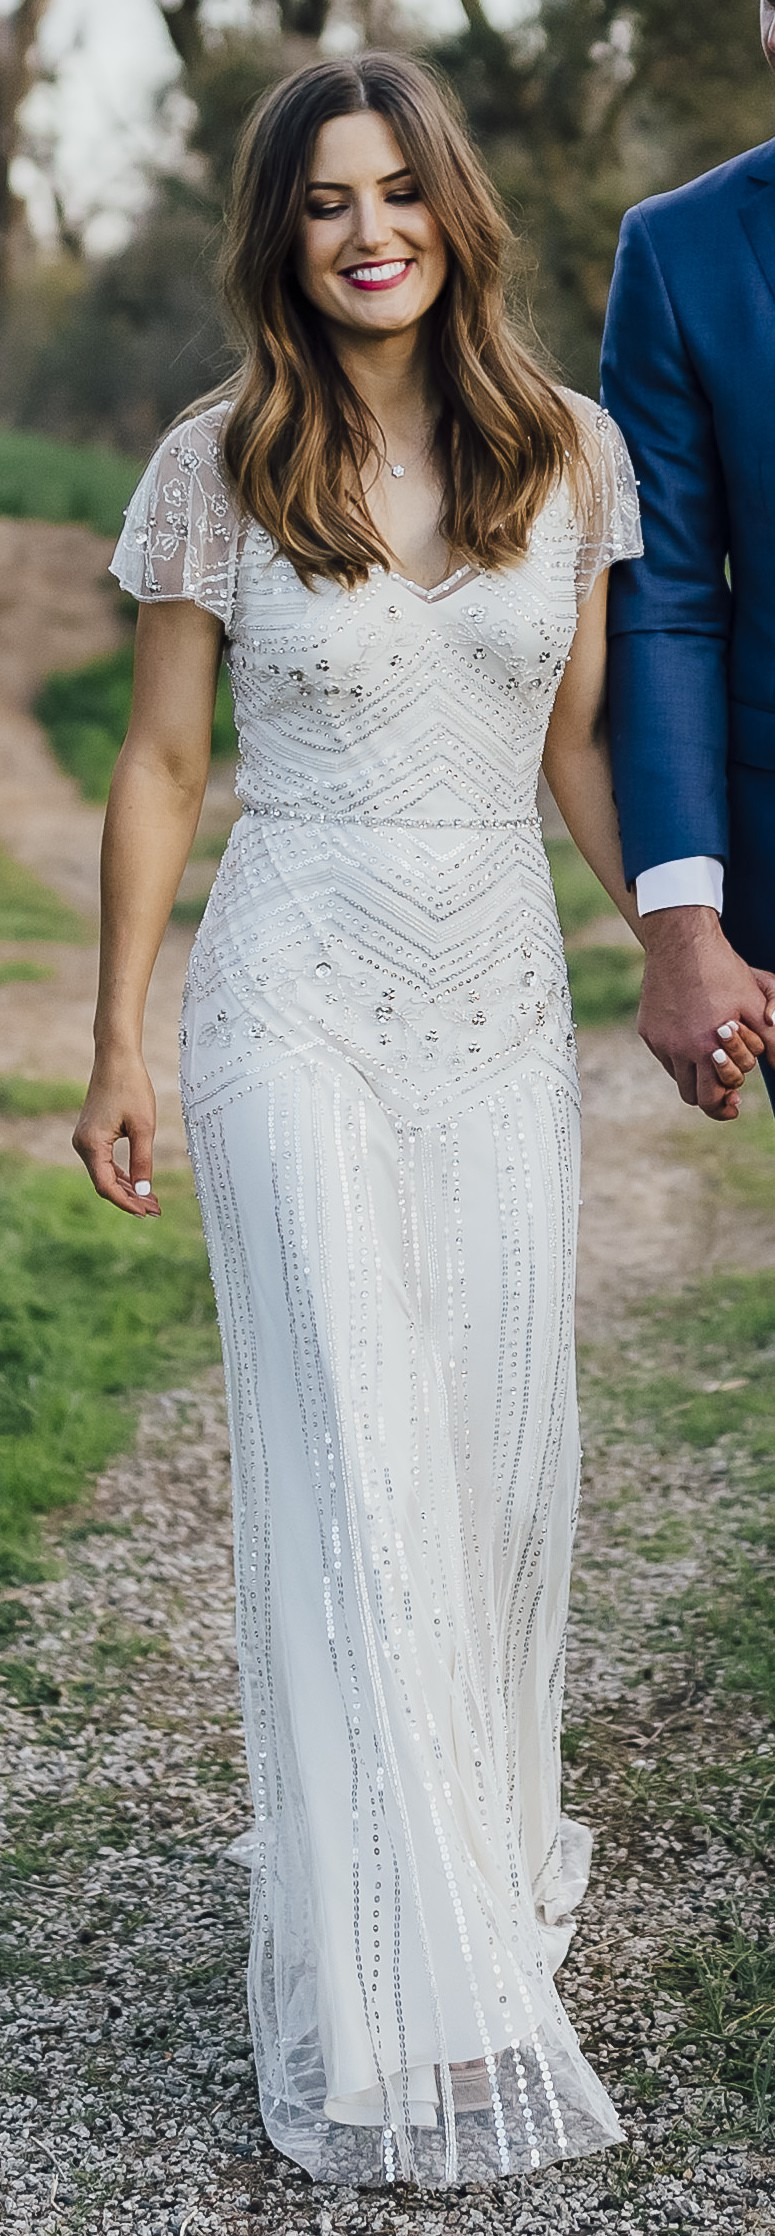 Jenny packham second hand wedding dress on sale 50 off for Second hand jenny packham wedding dress